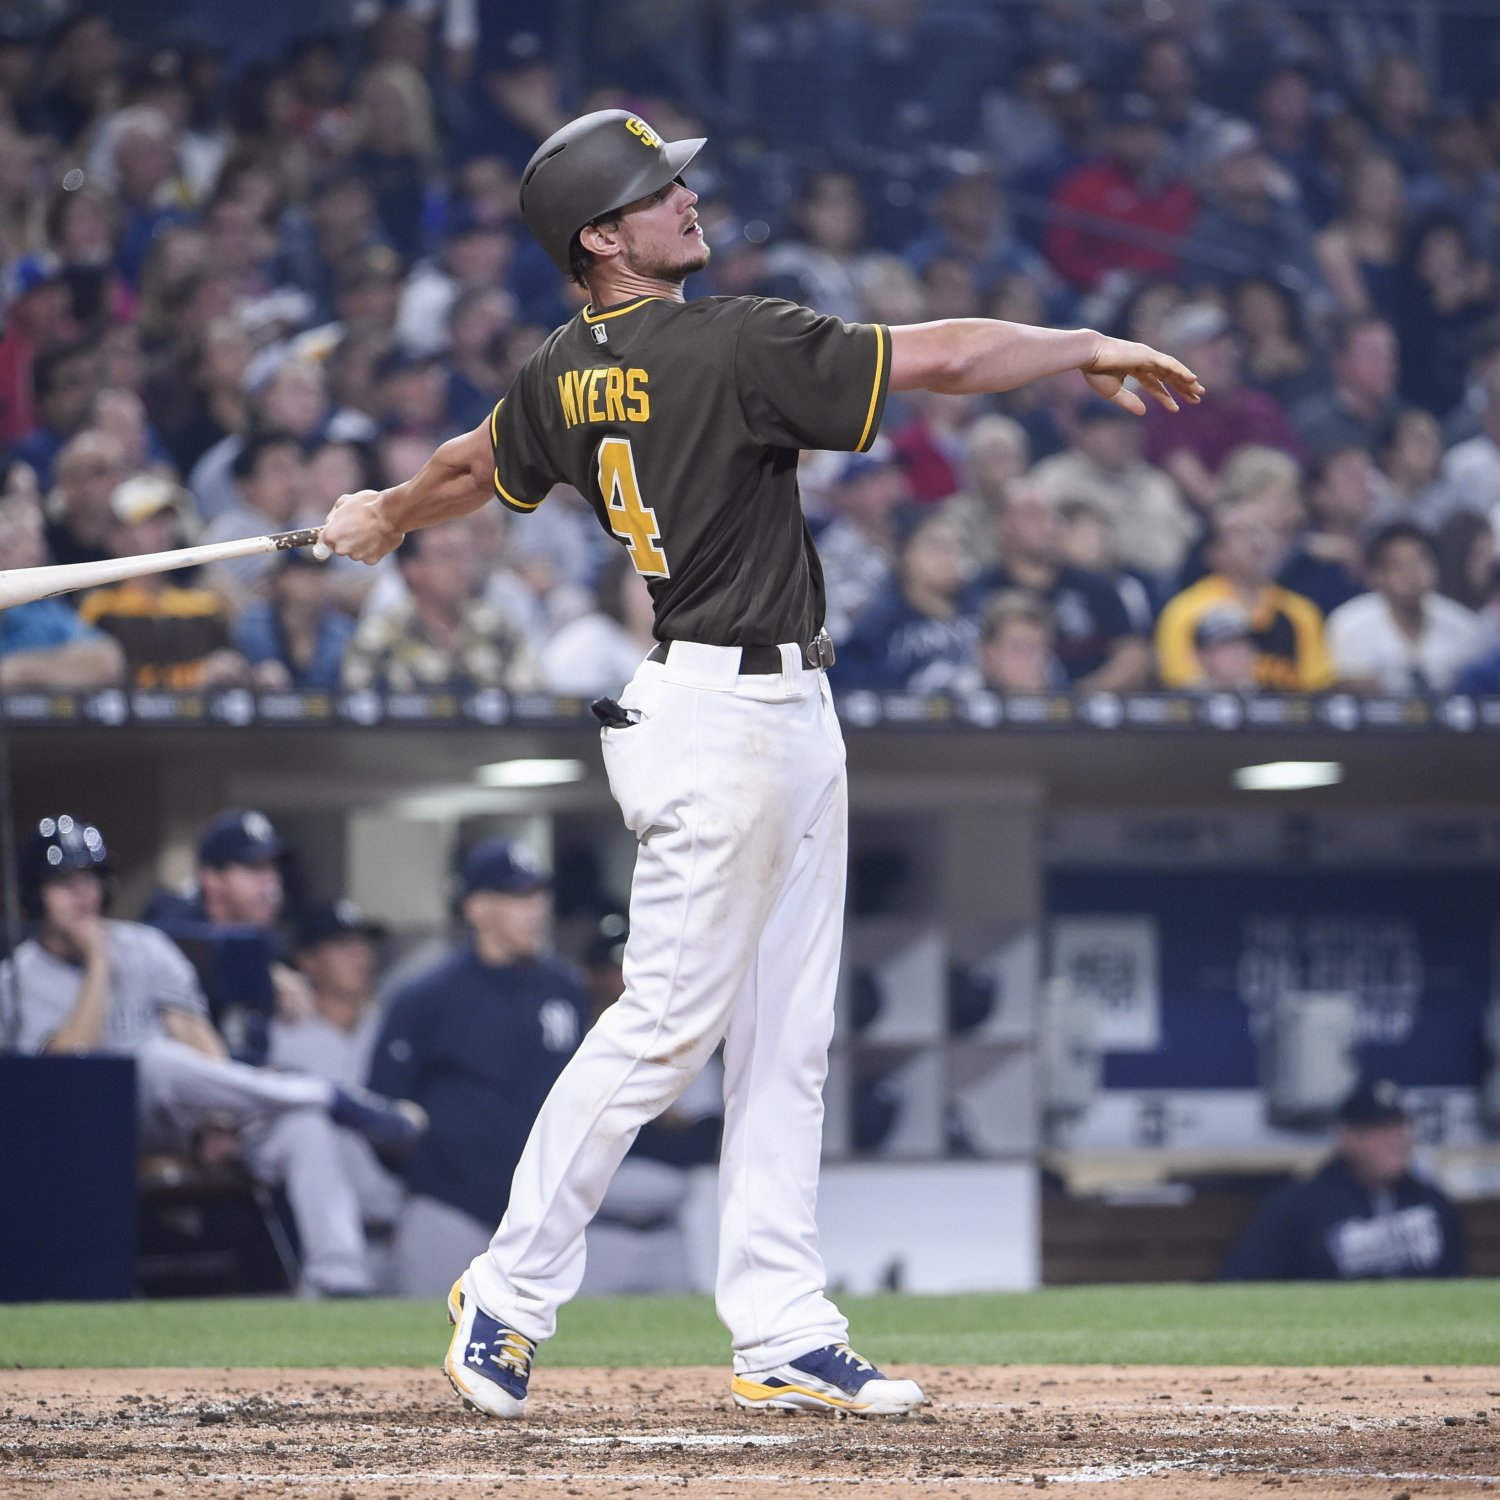 Home Run Derby 2016: Full Bracket, Format And Predictions